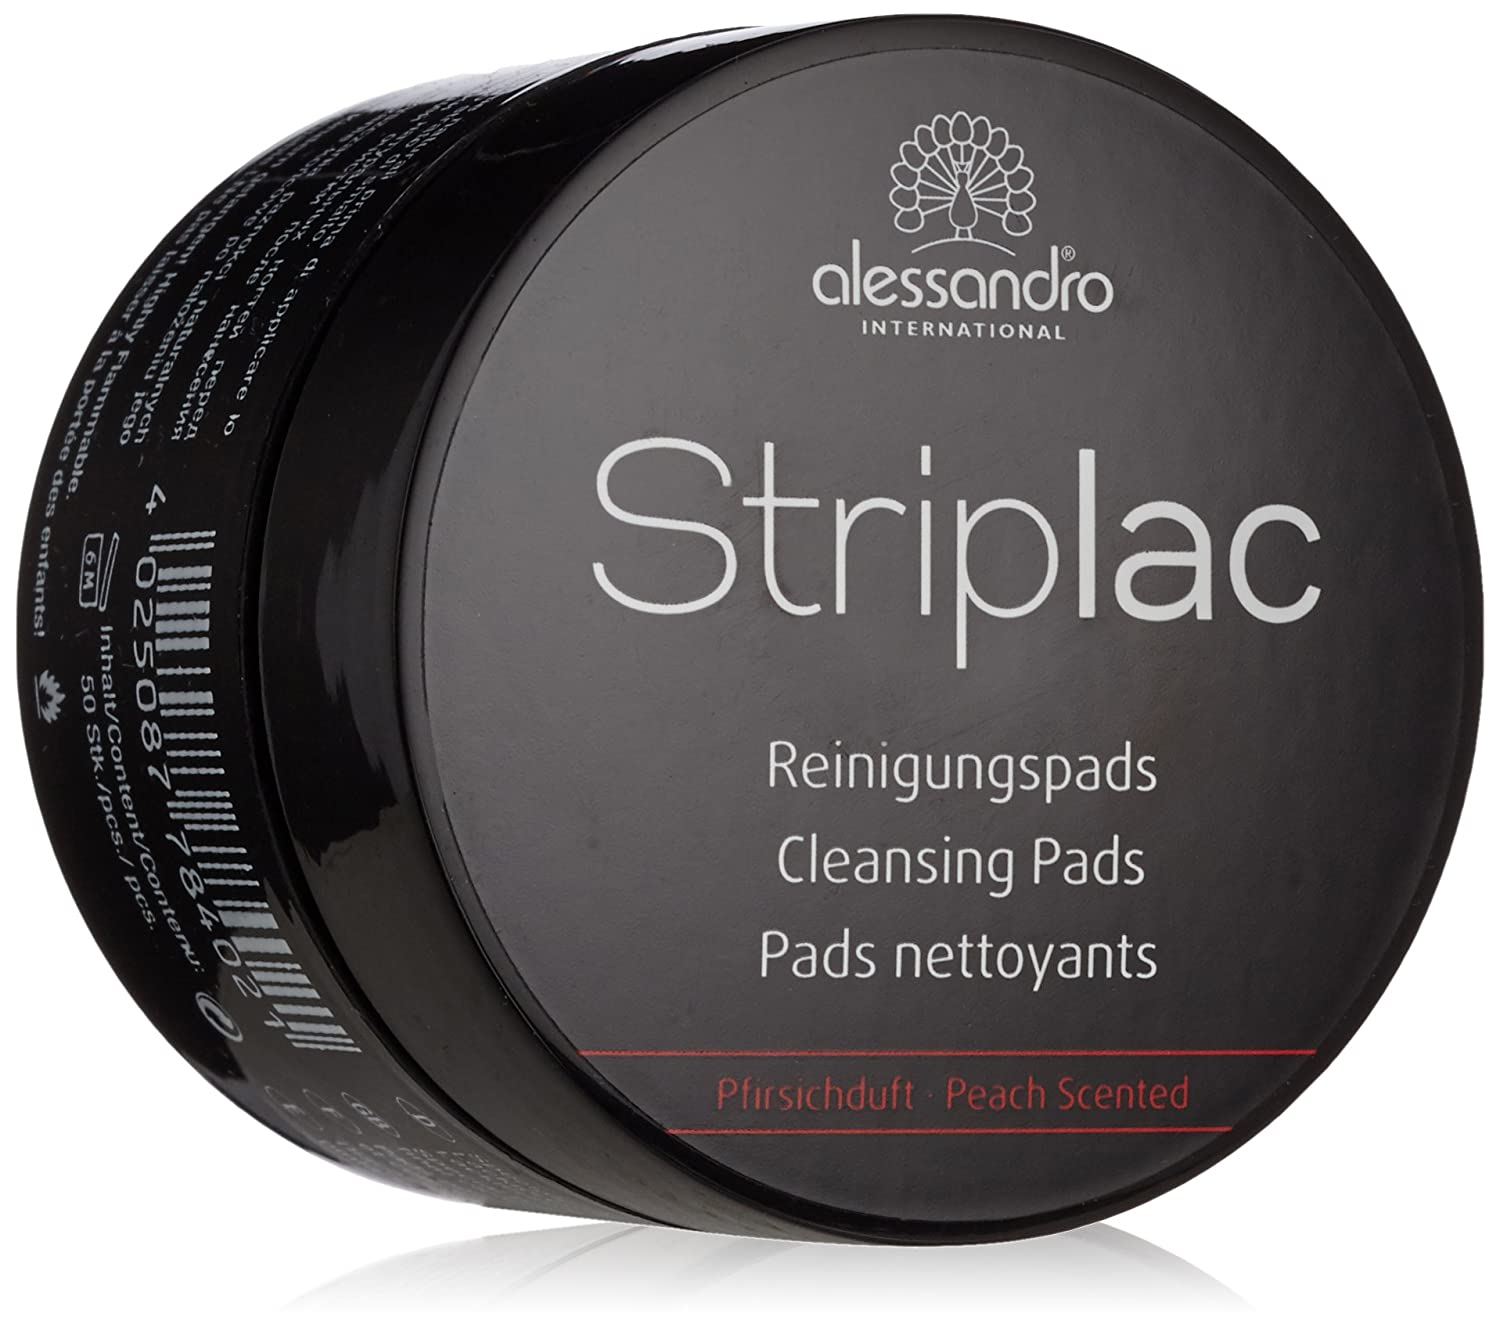 alessandro Striplac Cleaning Pads (Pack of 50) 78-402